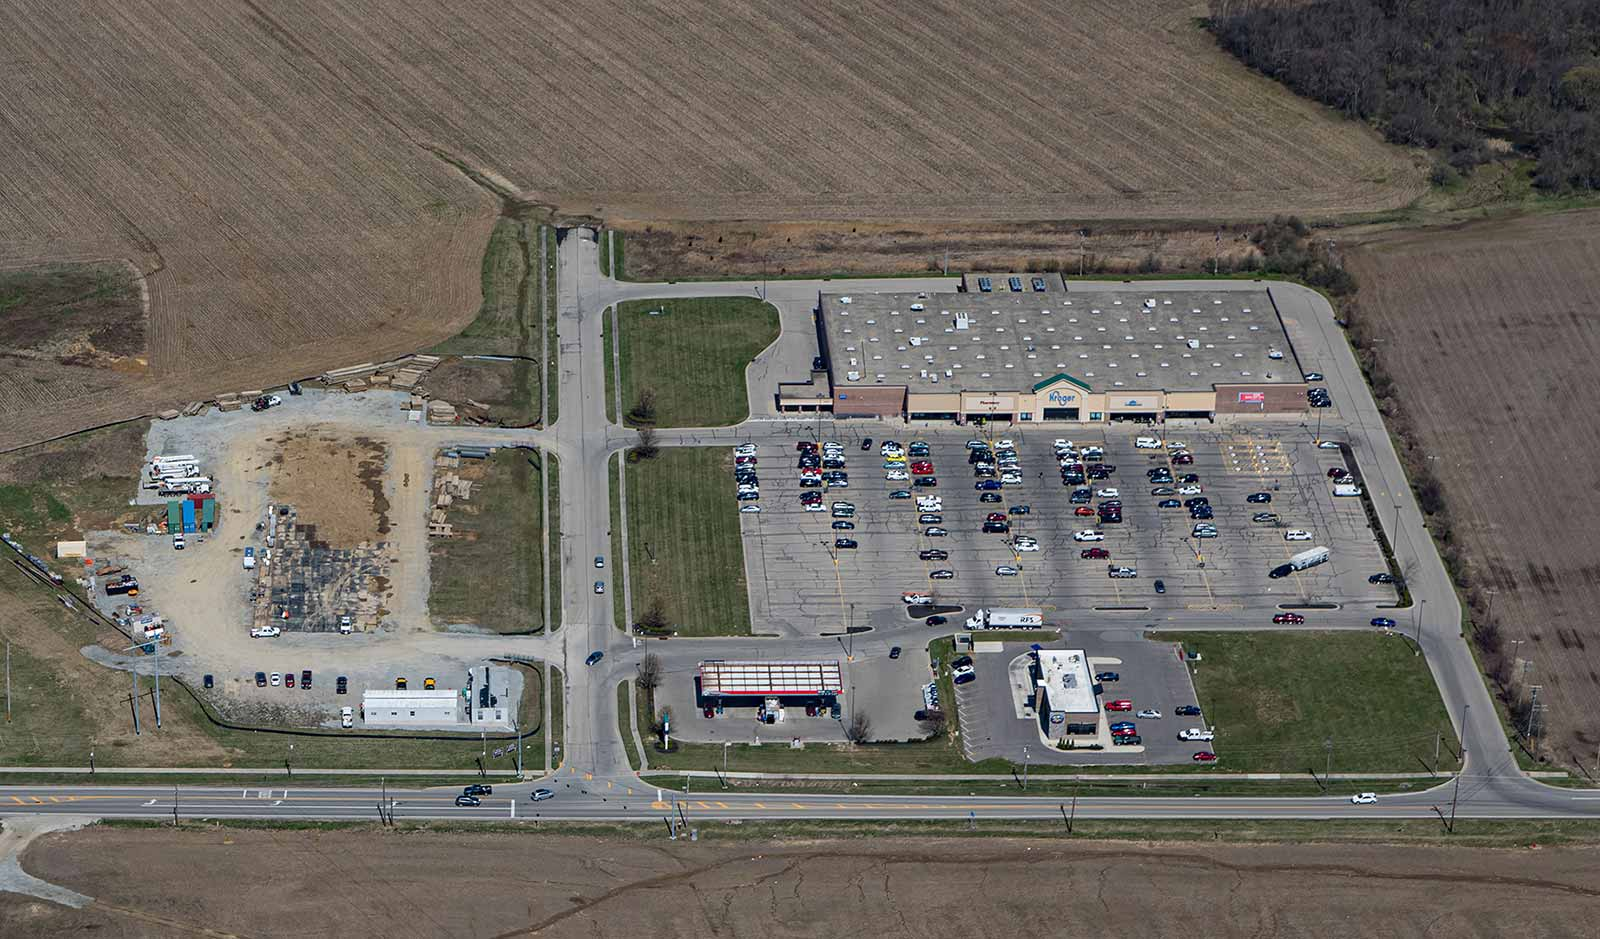 Aerial view of Wildcat Crossing shopping center in Blanchester.